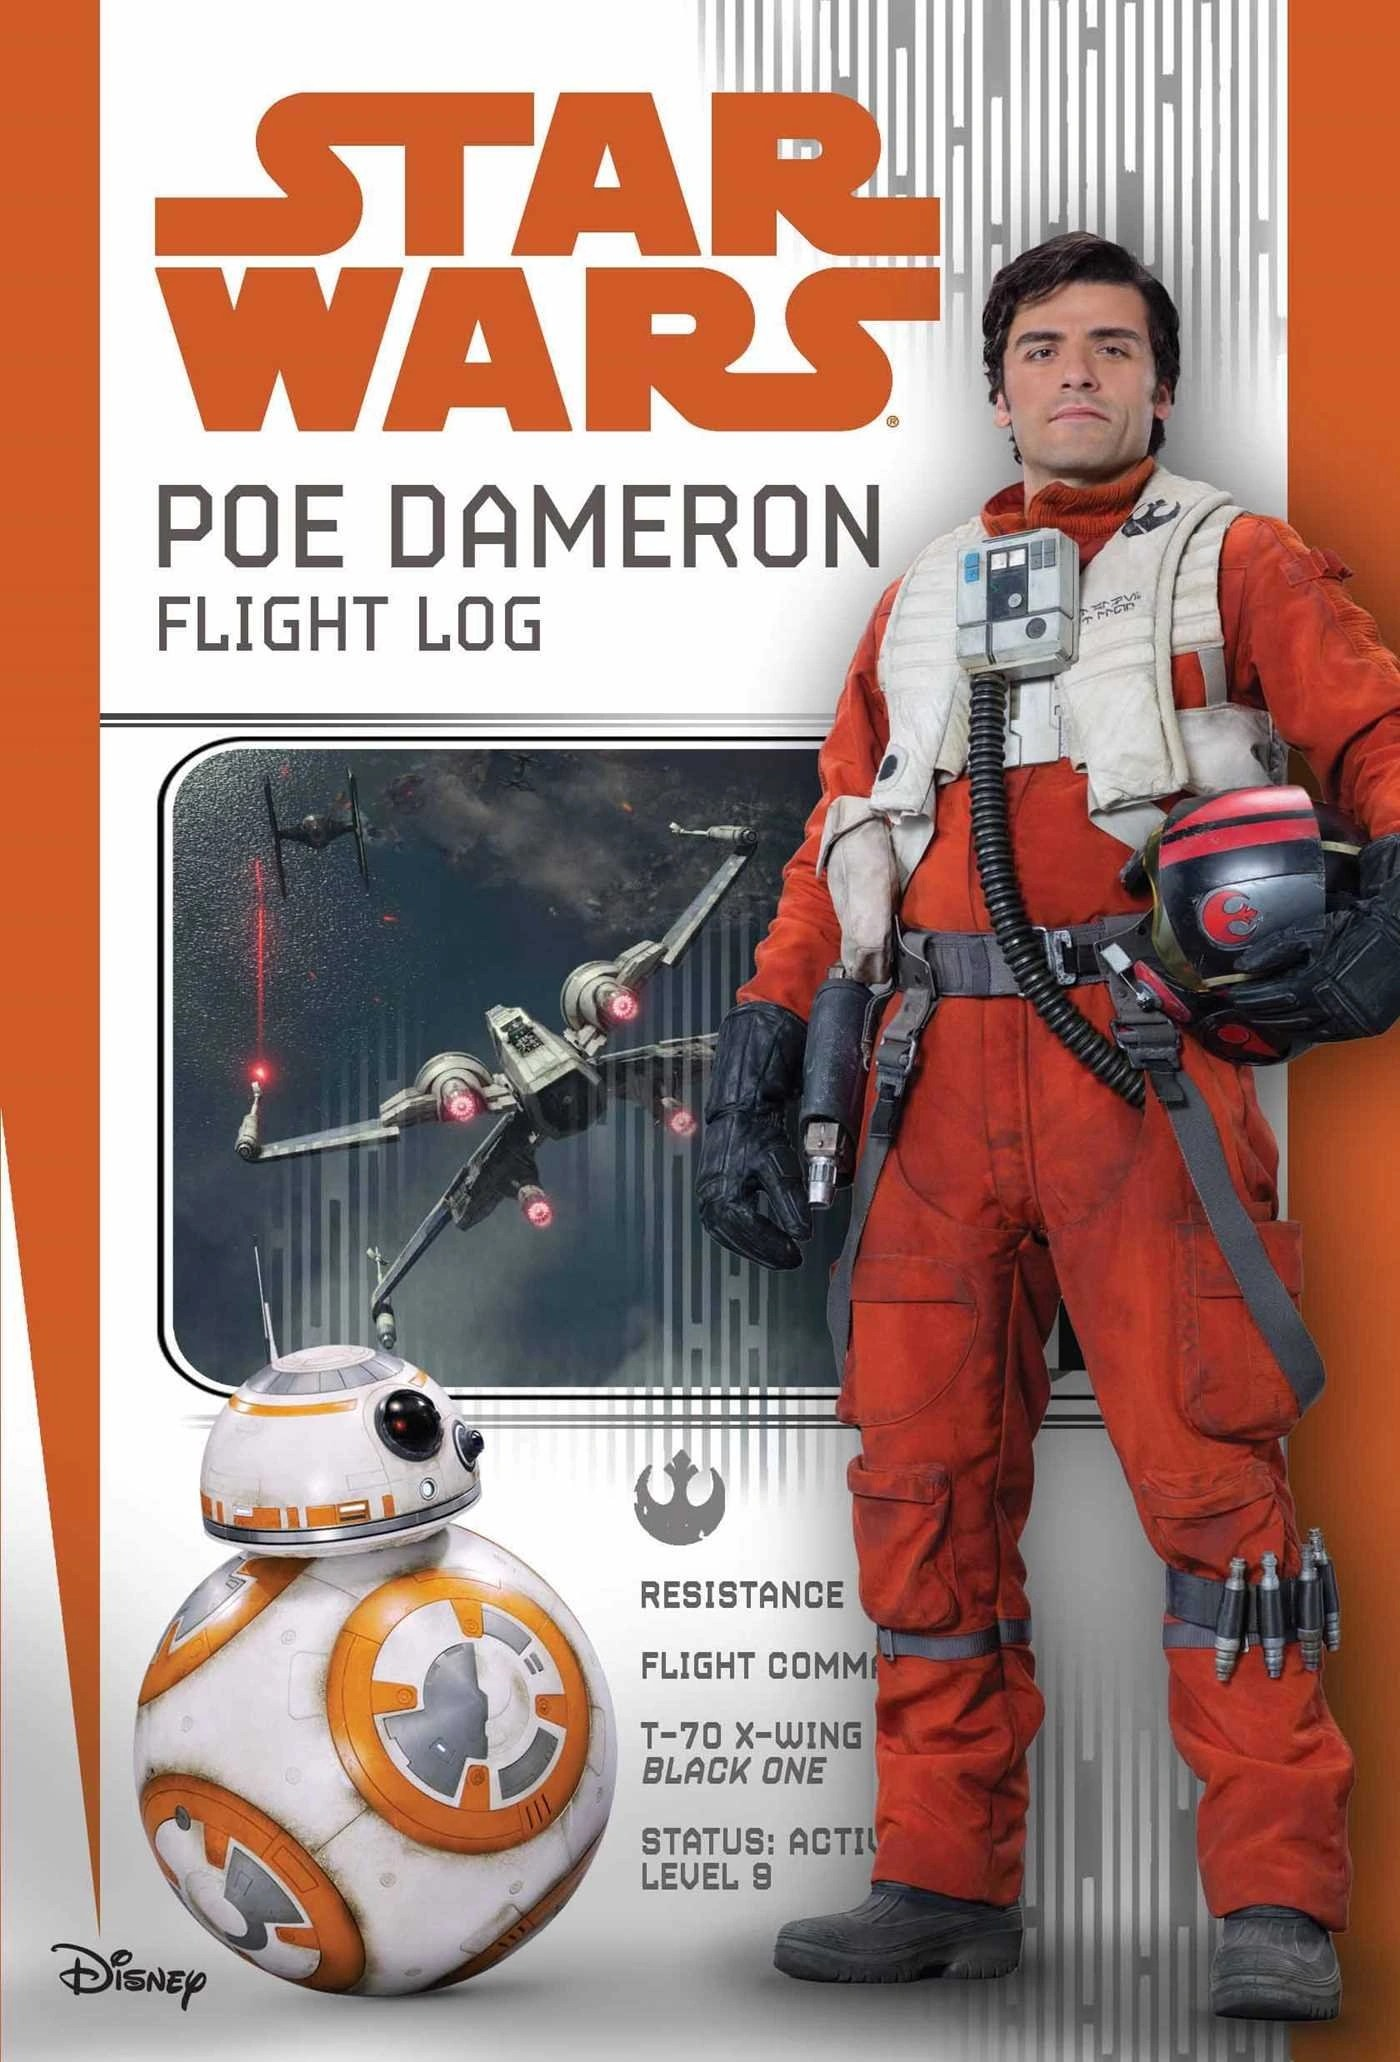 20 Star Wars Poe Dameron Meme Pictures And Ideas On Meta Networks